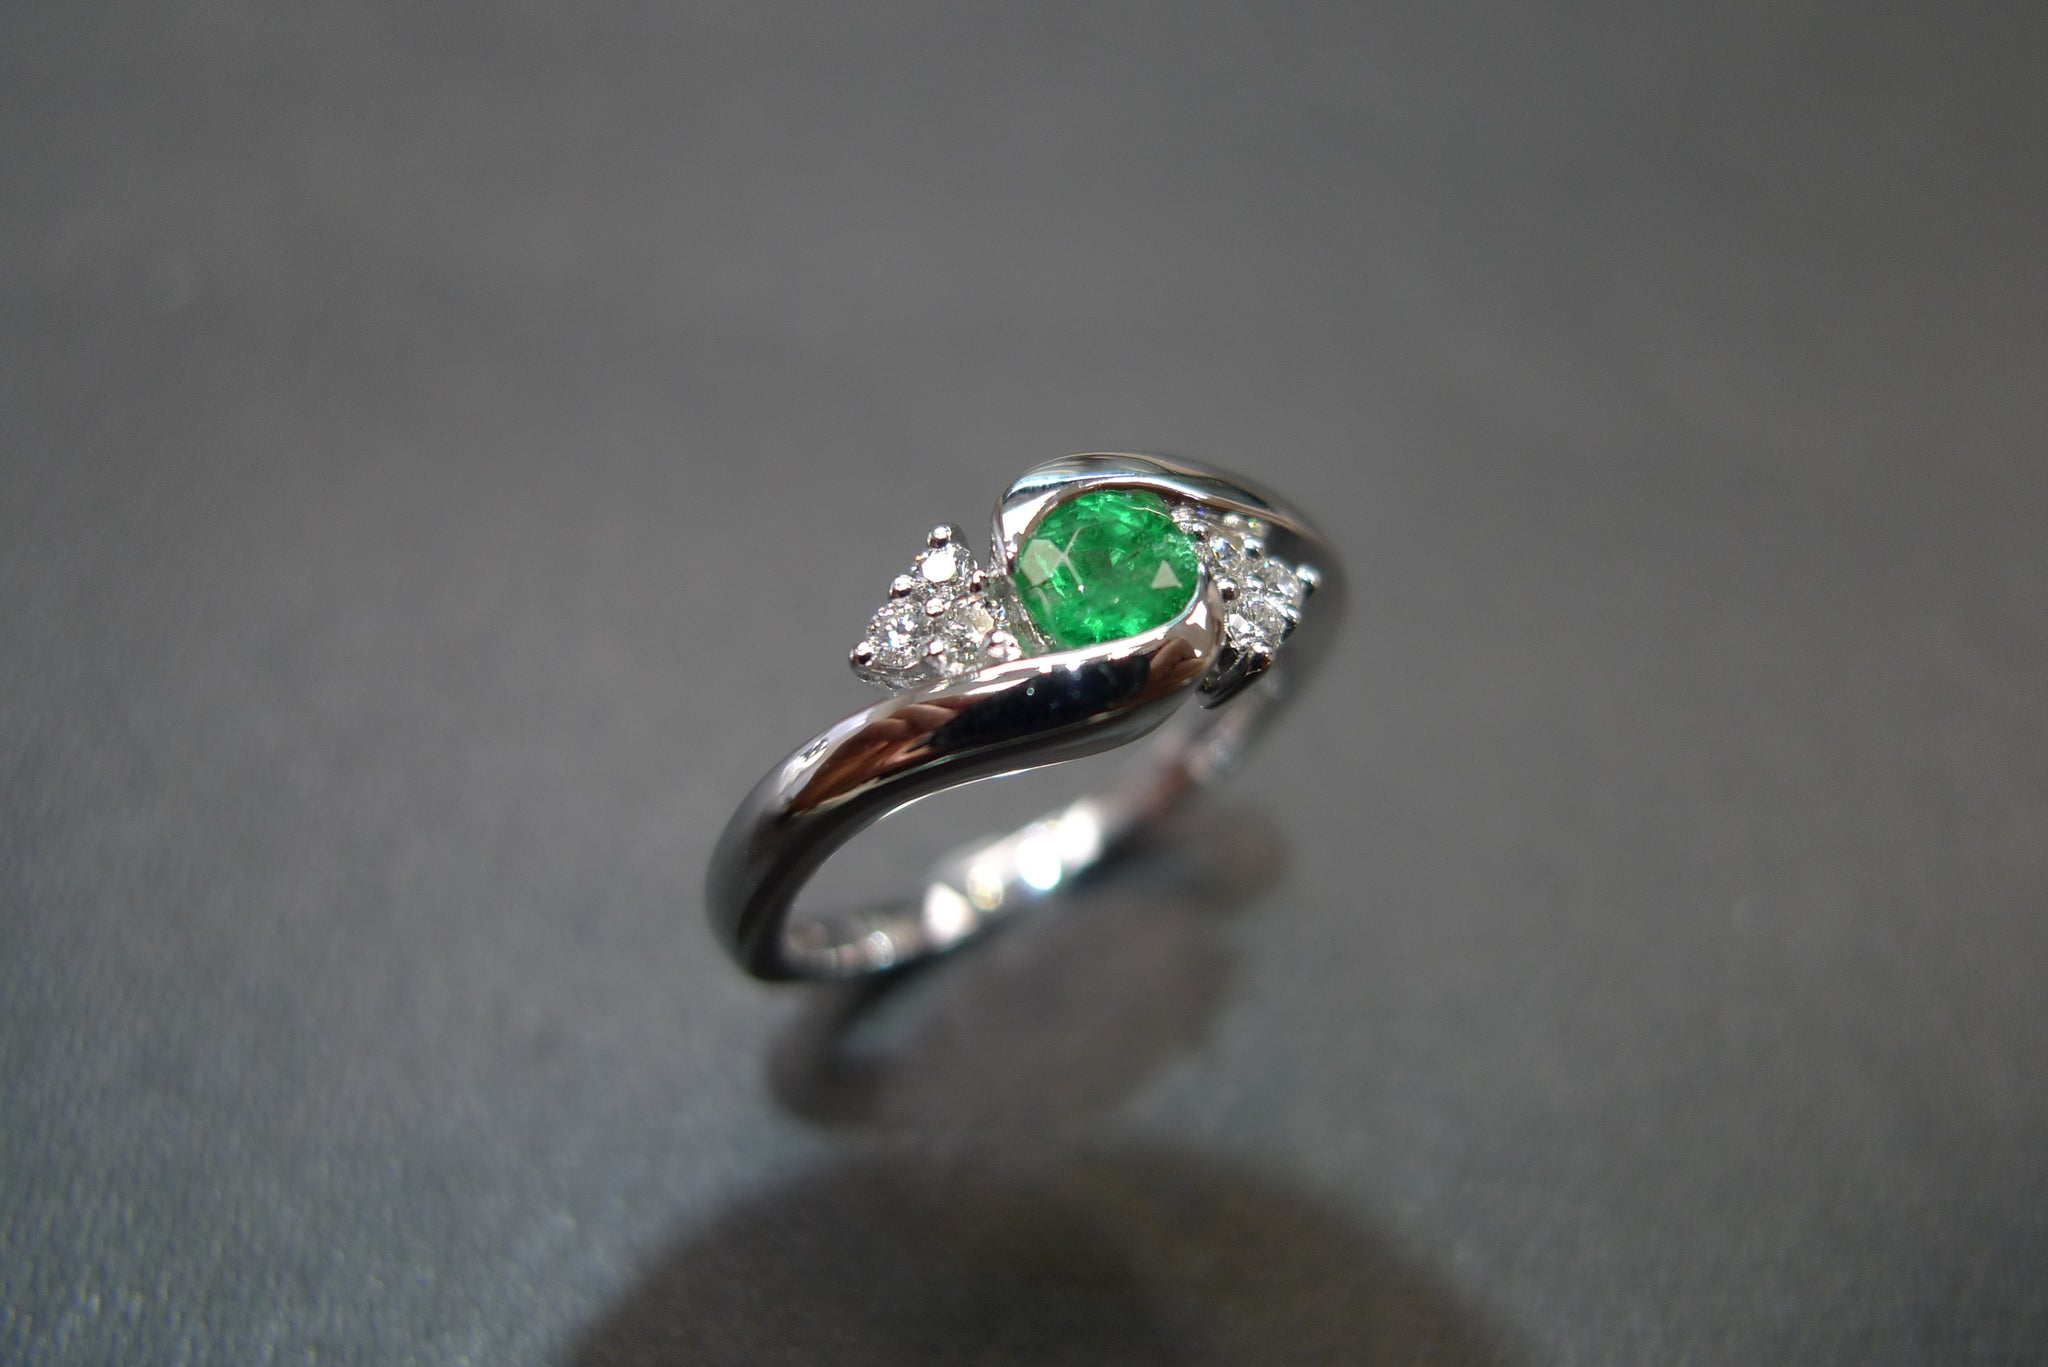 Emerald & Diamond Twist Ring in 14K White Gold - HN JEWELRY